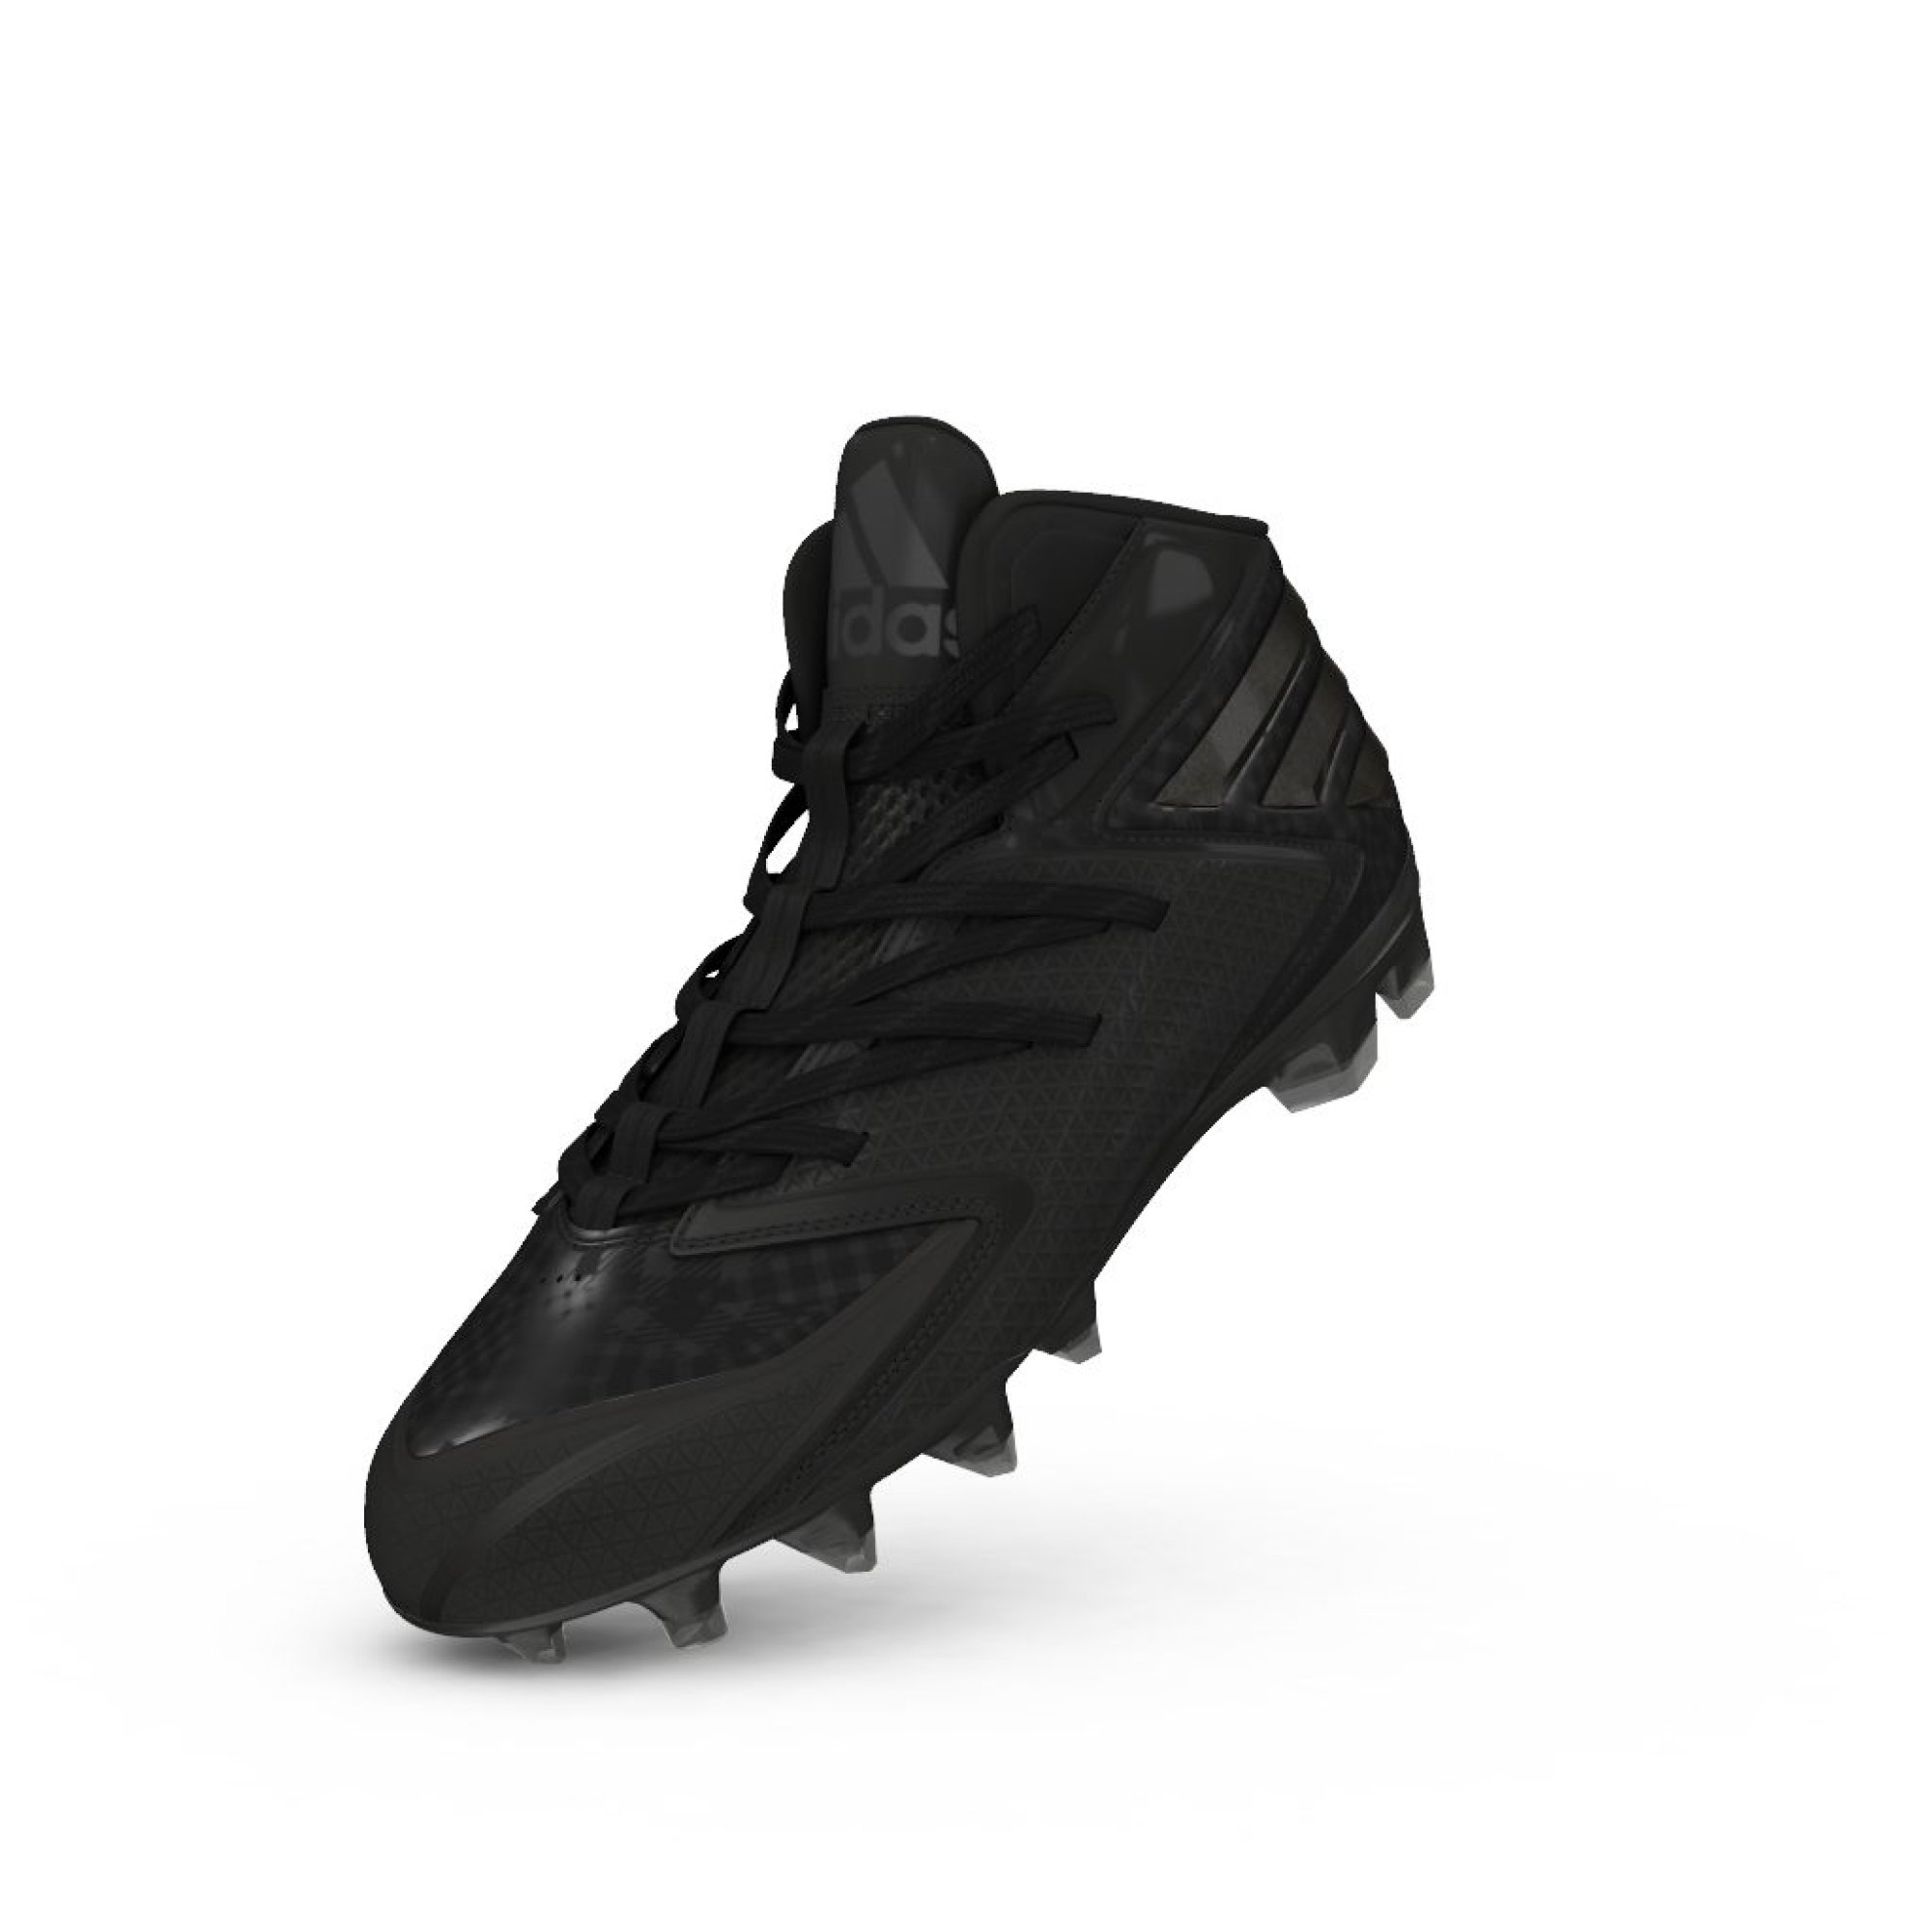 adidas Freak X Carbon Mid Mens Football Cleat 16 Black by adidas